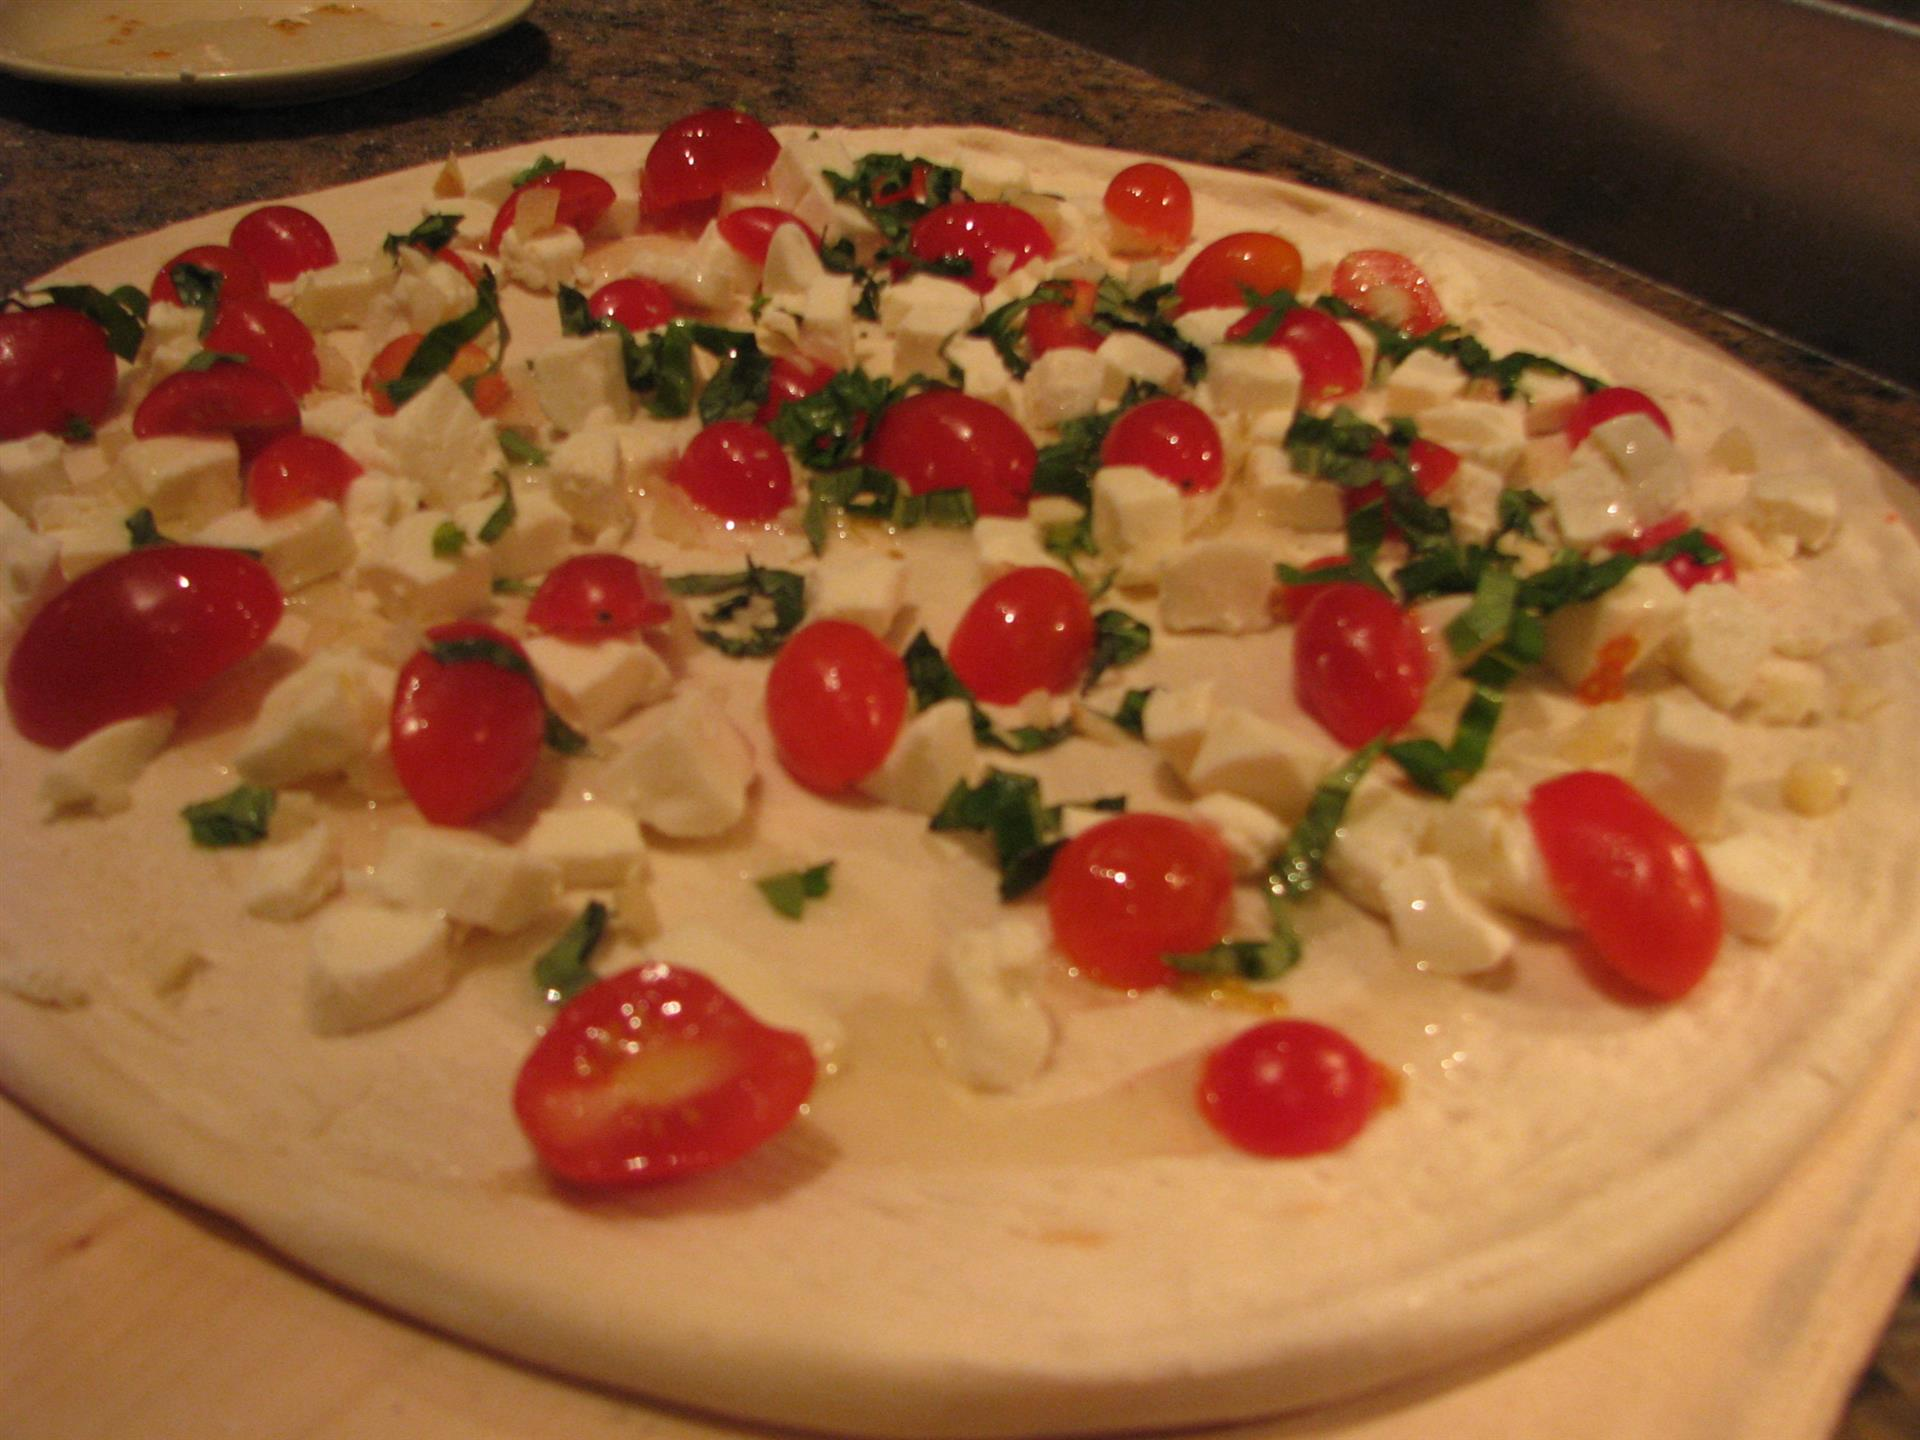 pizza topped with feta cheese and tomatoes